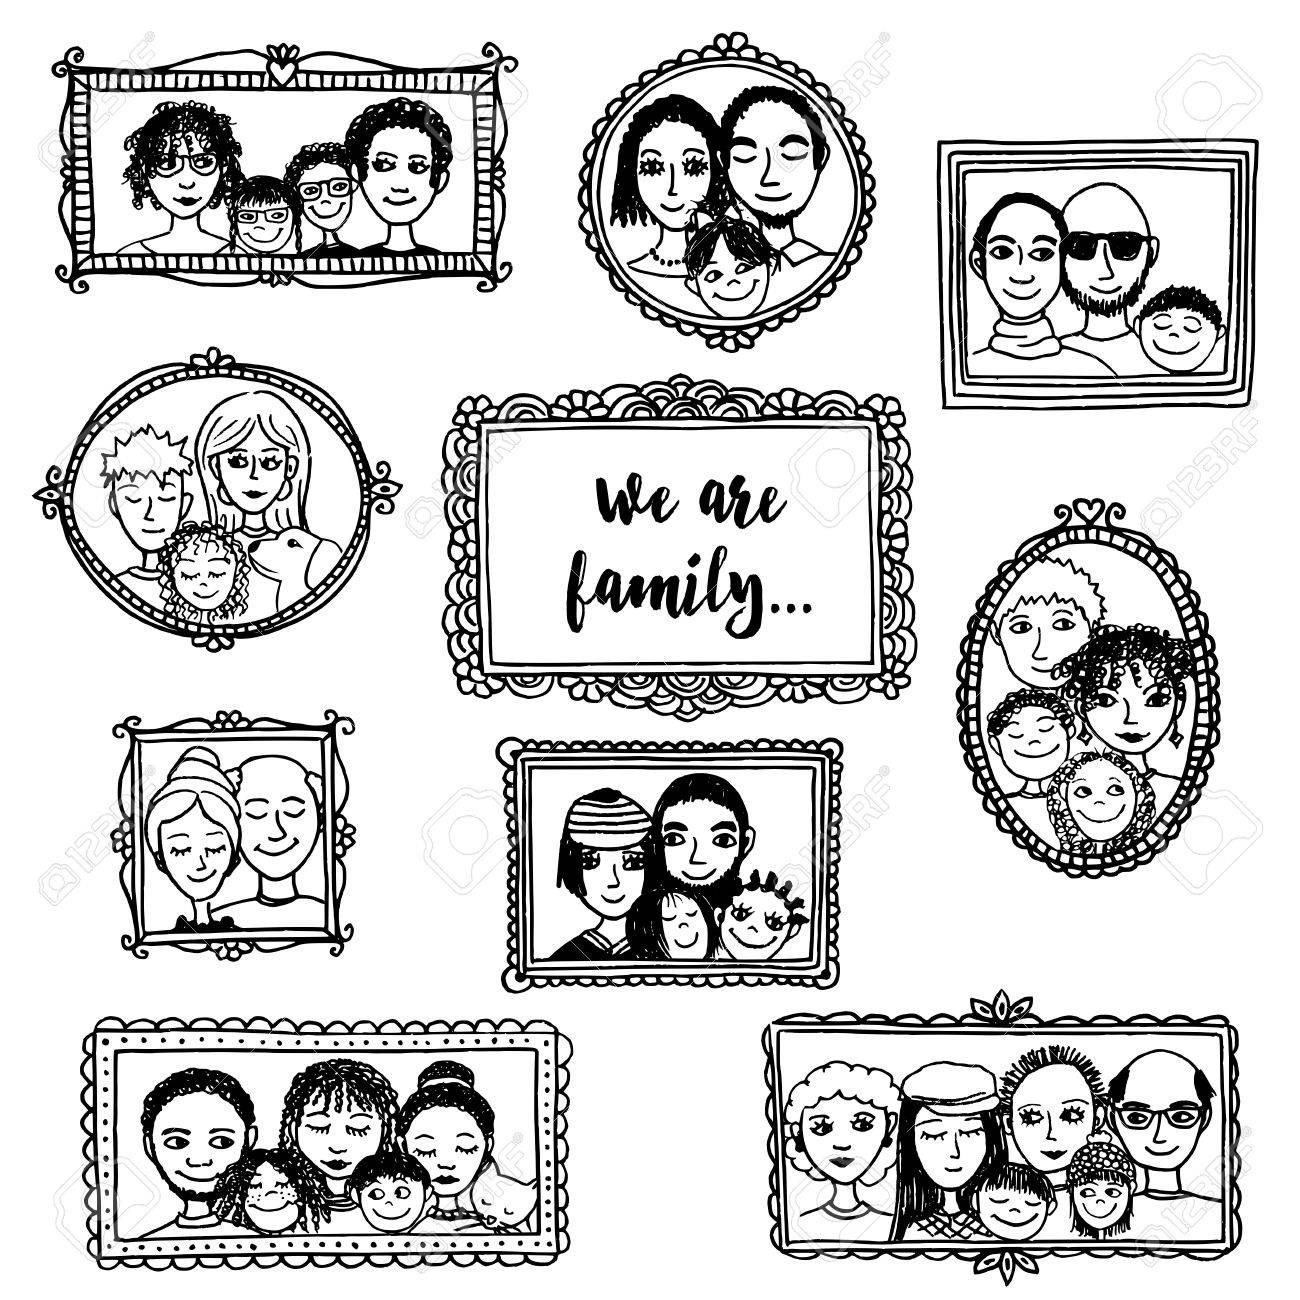 1300x1300 We Are Family! Cute Hand Drawn Picture Frames With Family